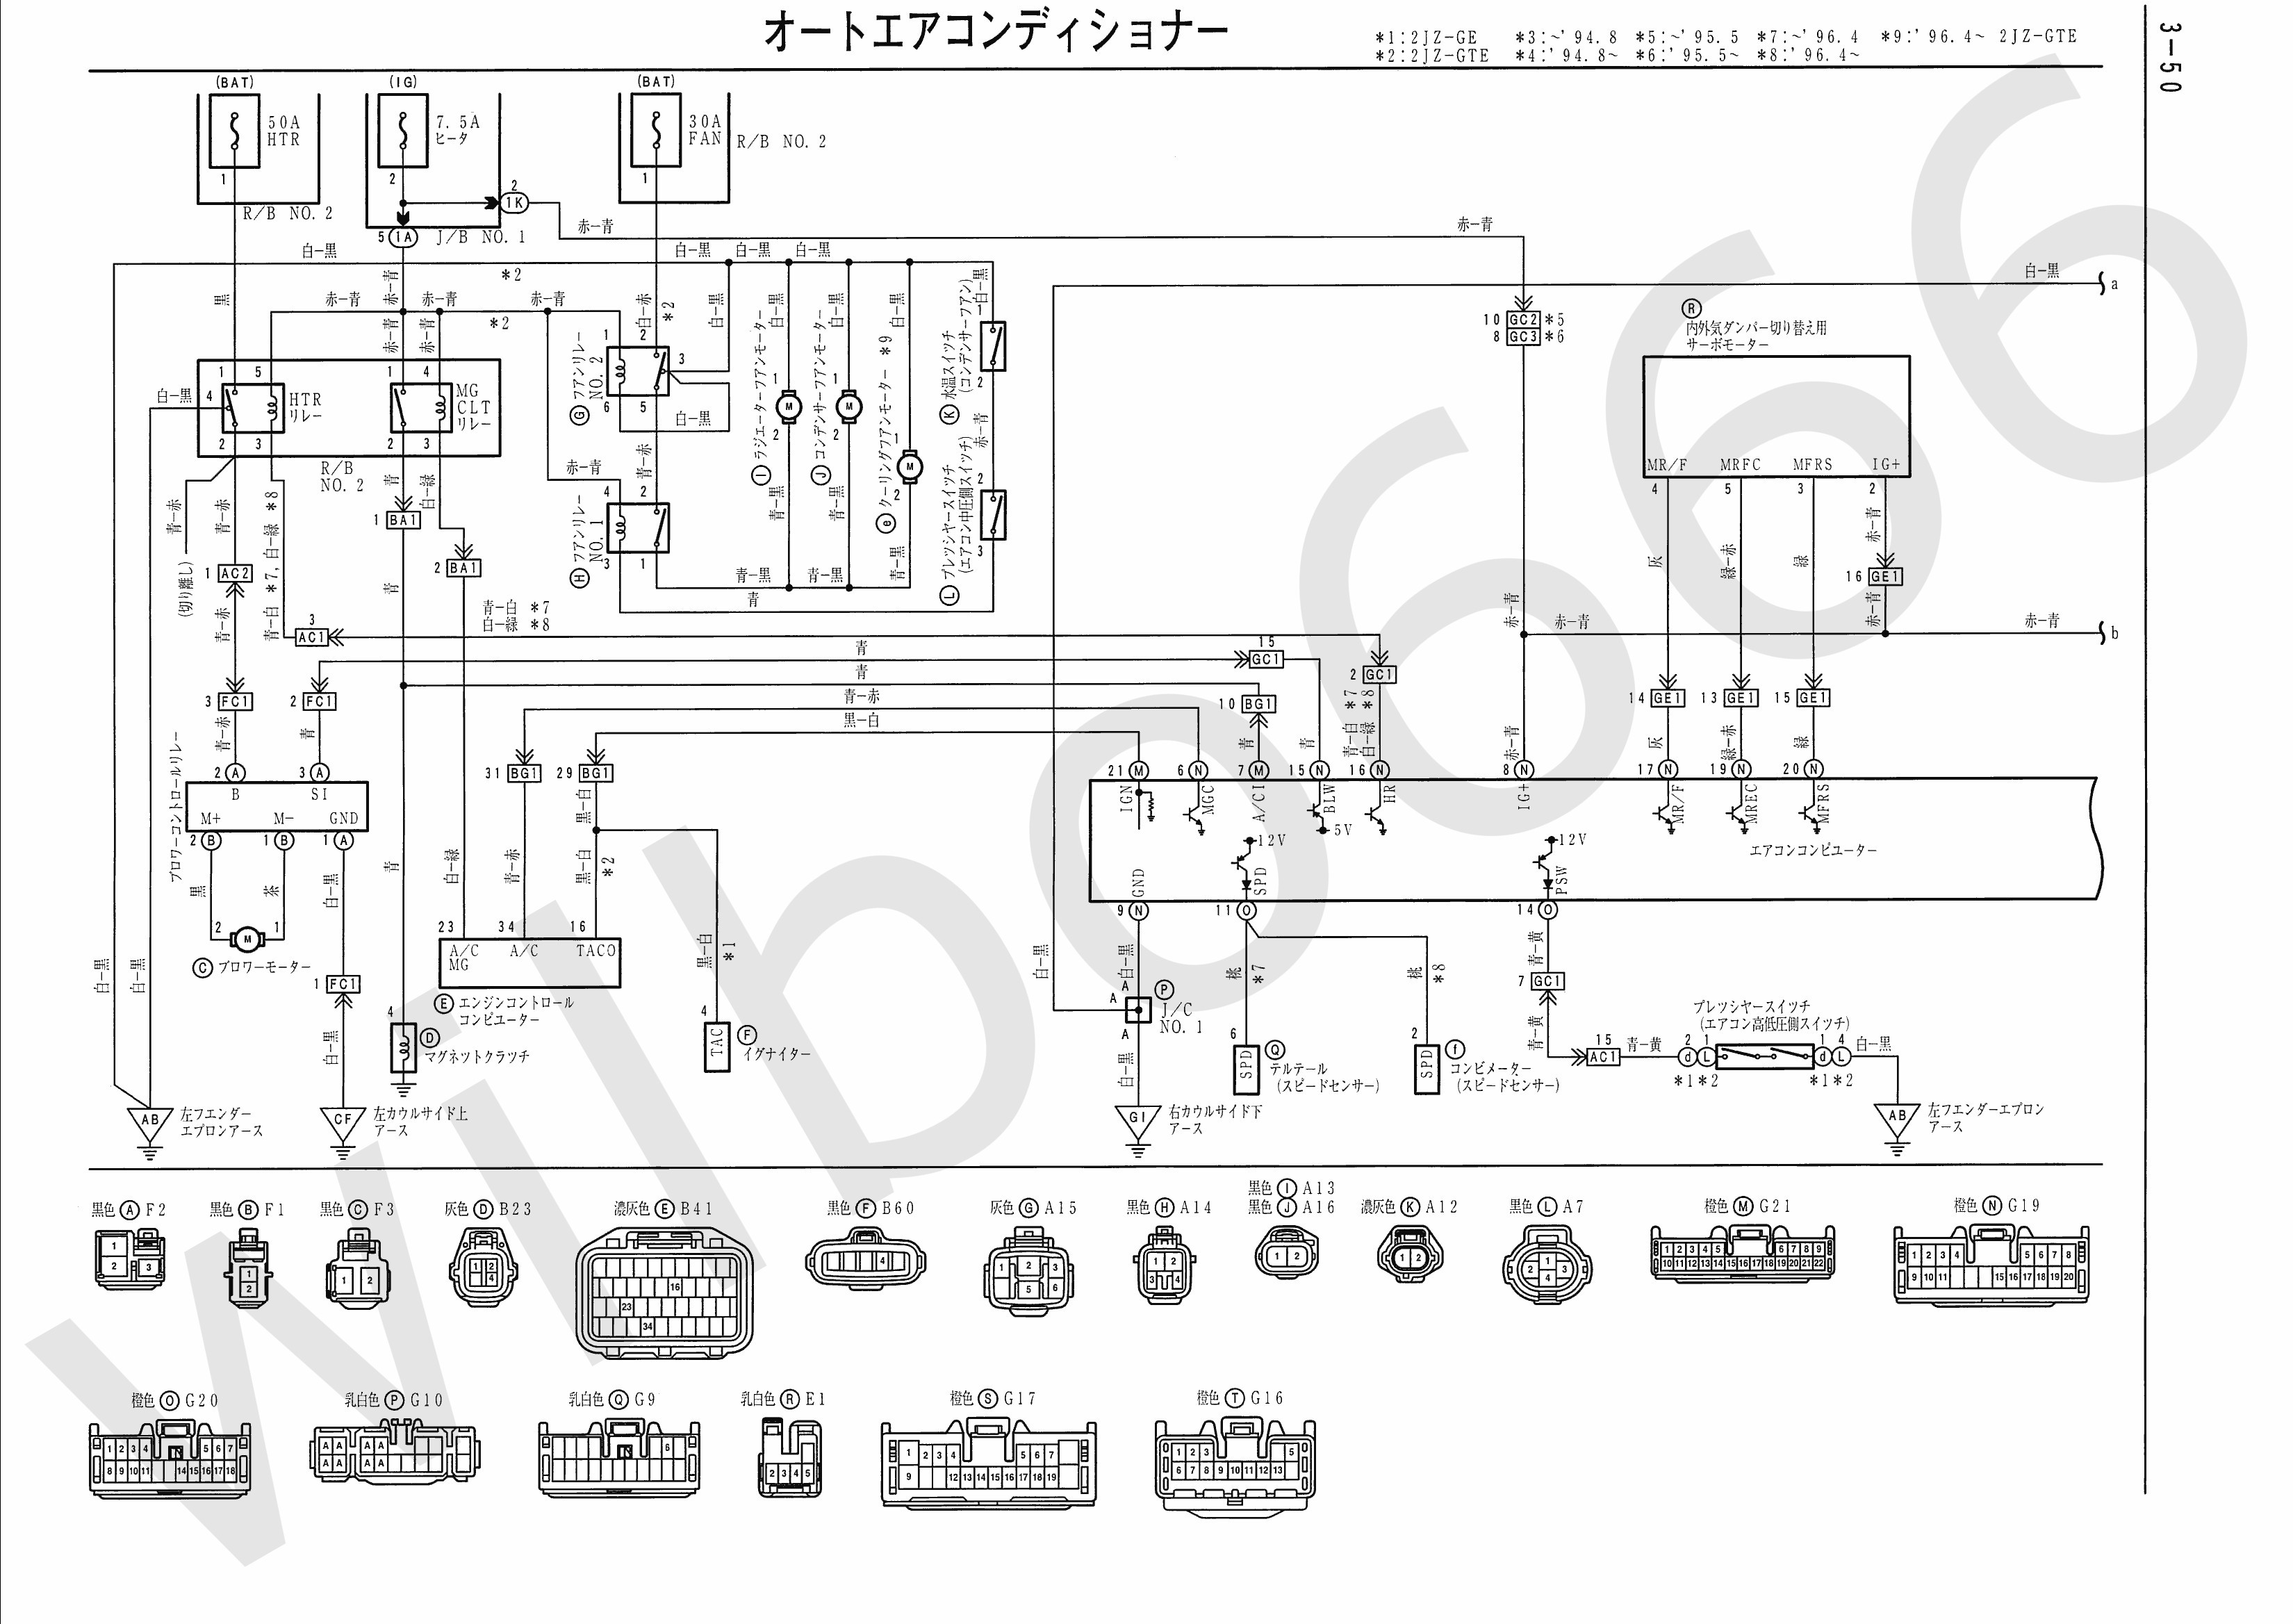 wiring diagram of car pdf wiring diagram week car air conditioning system wiring diagram pdf gallery